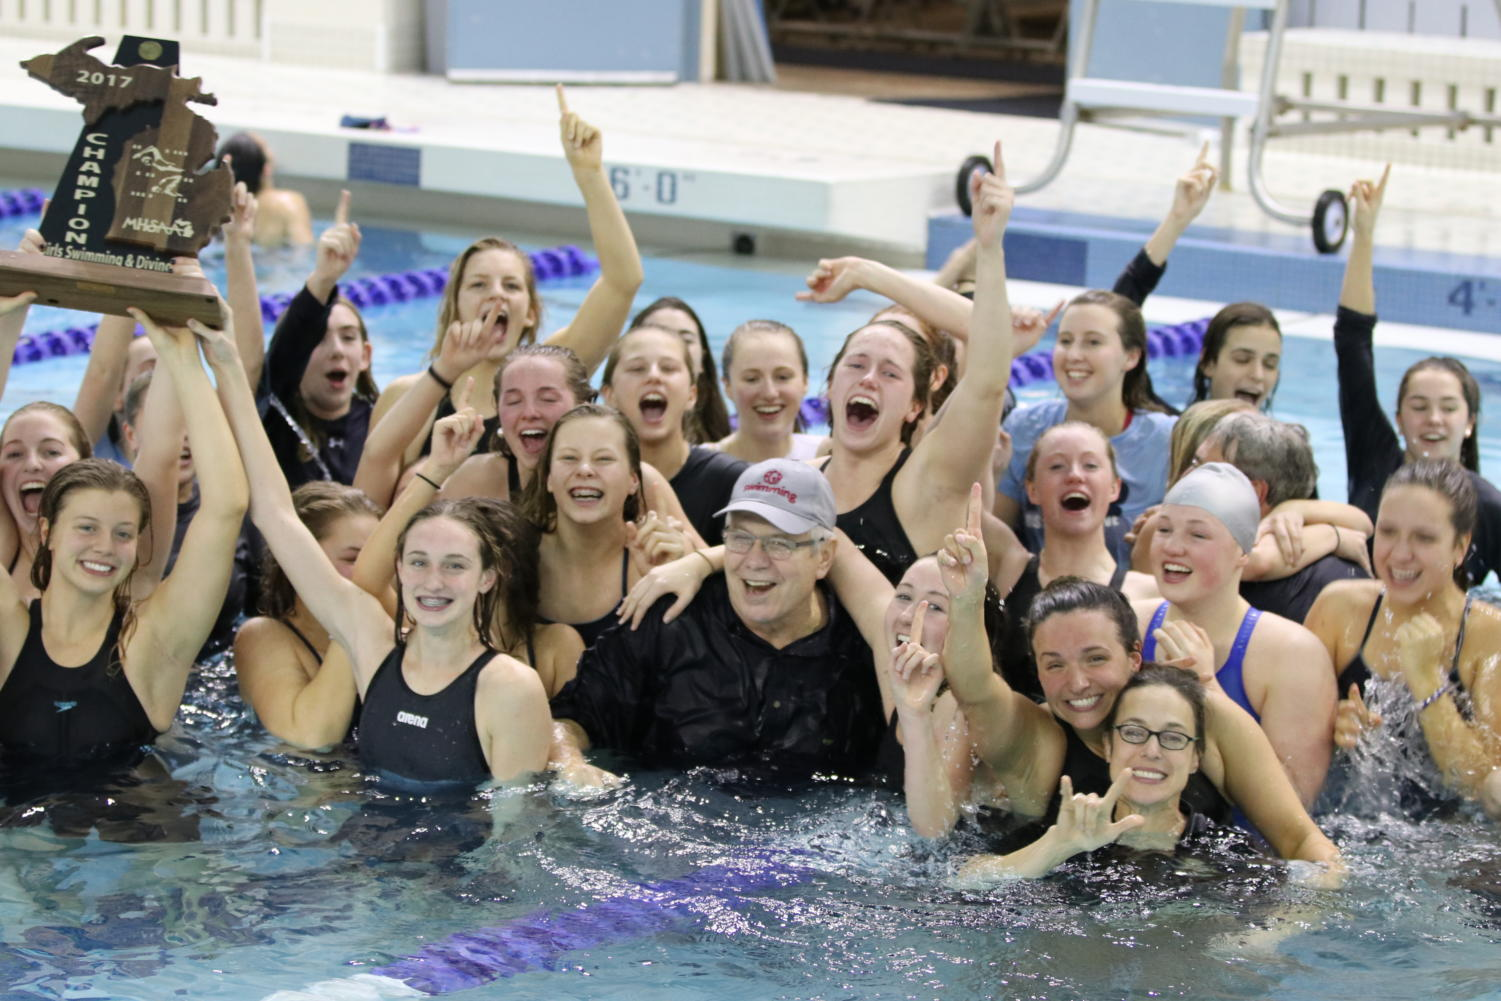 Girls Swim team wins their 21st state championship, their first as a Division 2 team